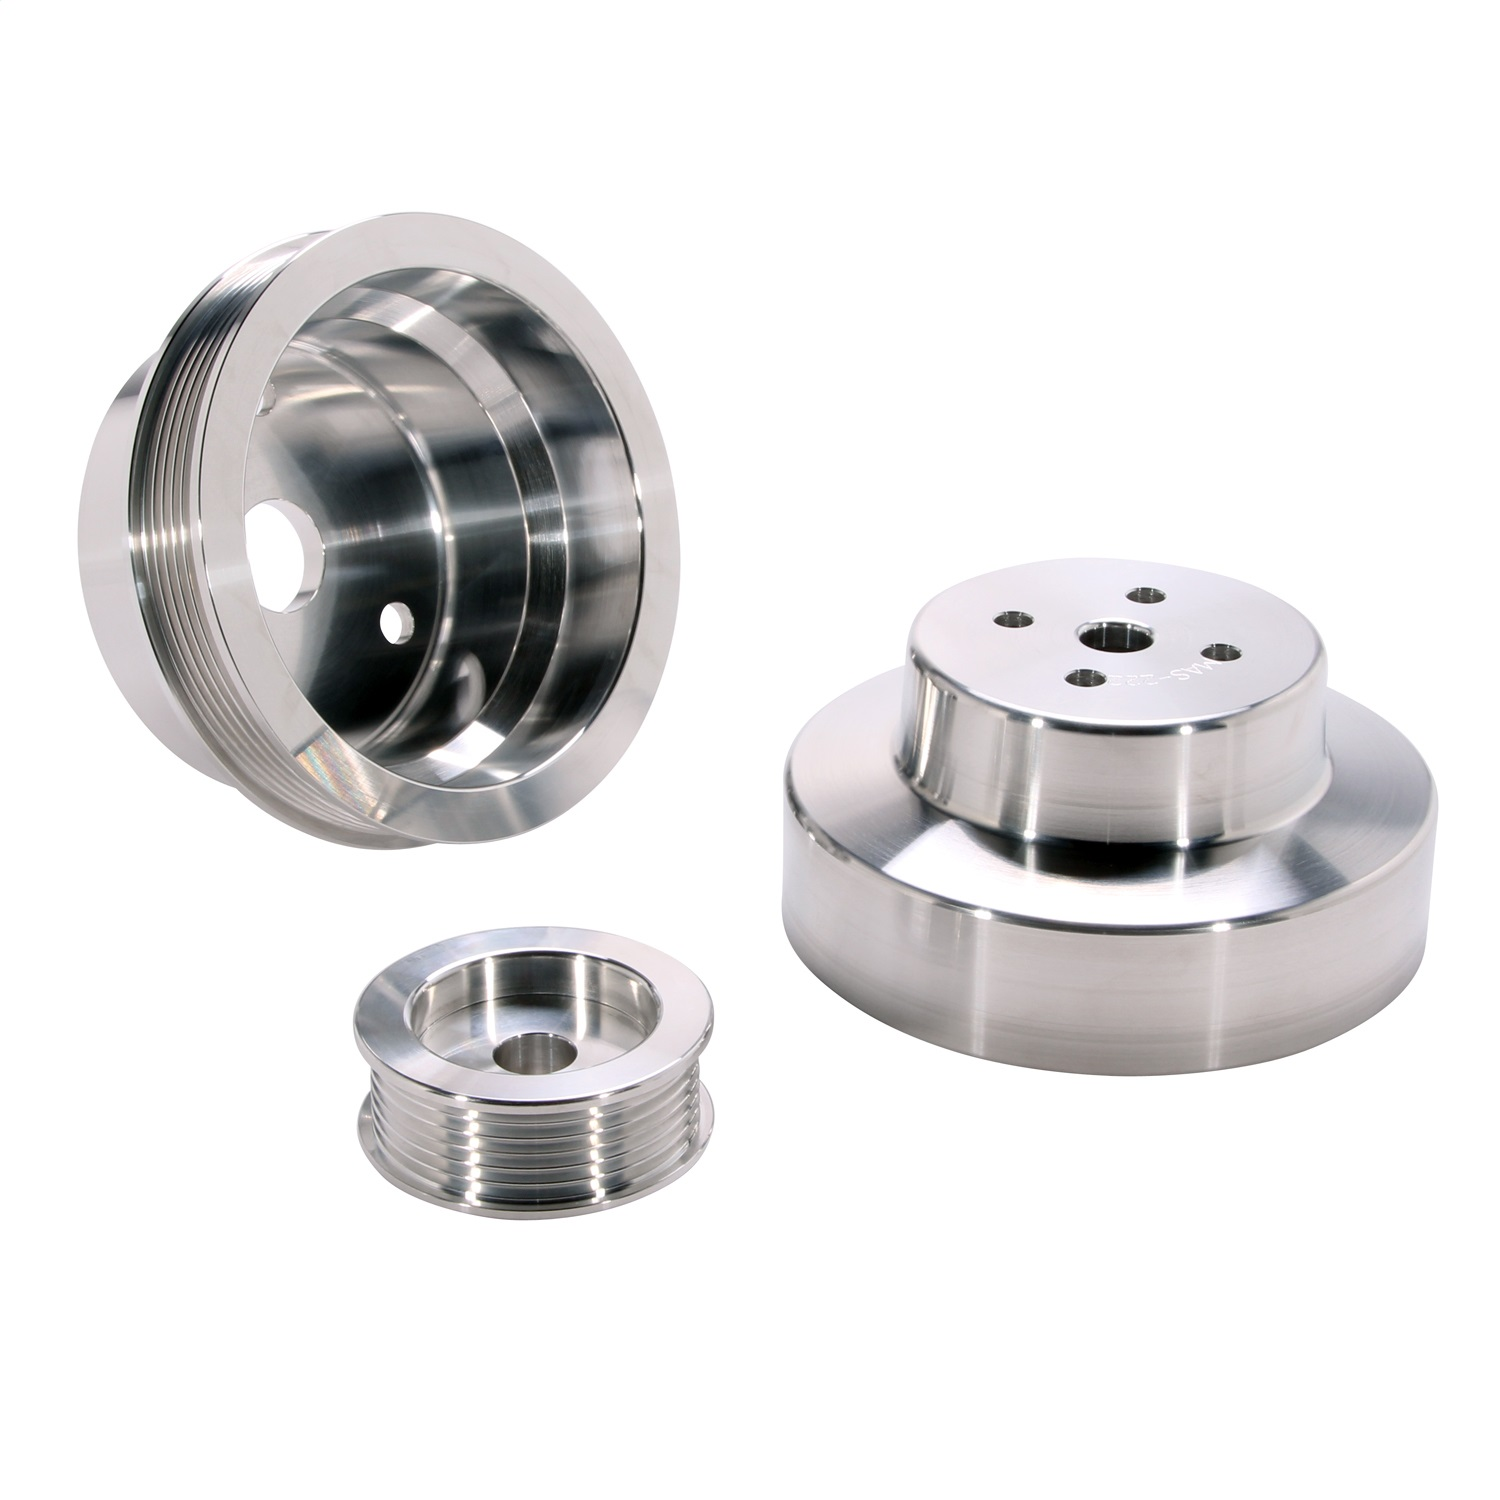 BBK Performance 1603 Power-Plus Series Underdrive Pulley System